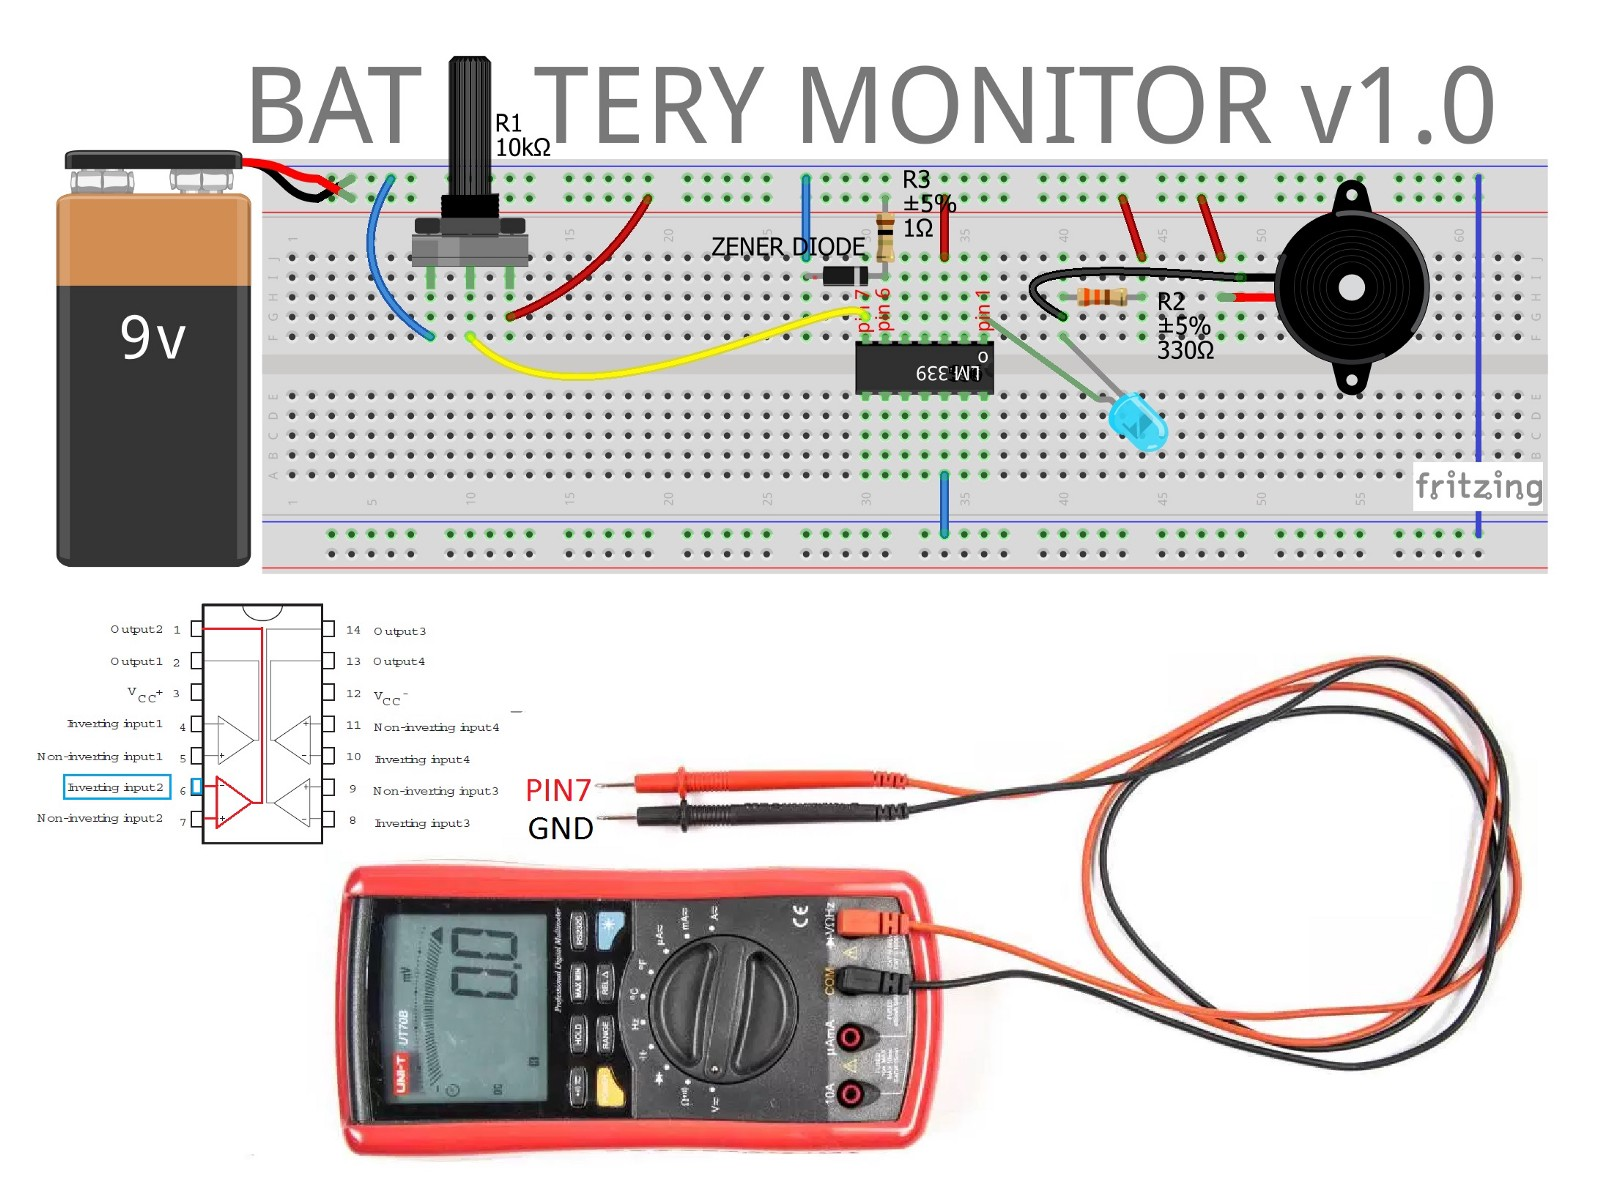 hight resolution of once established limits higher 9 volts and lower v 6 volts monitor the battery until its voltage drops below 6v the led lights and triggers the alarm